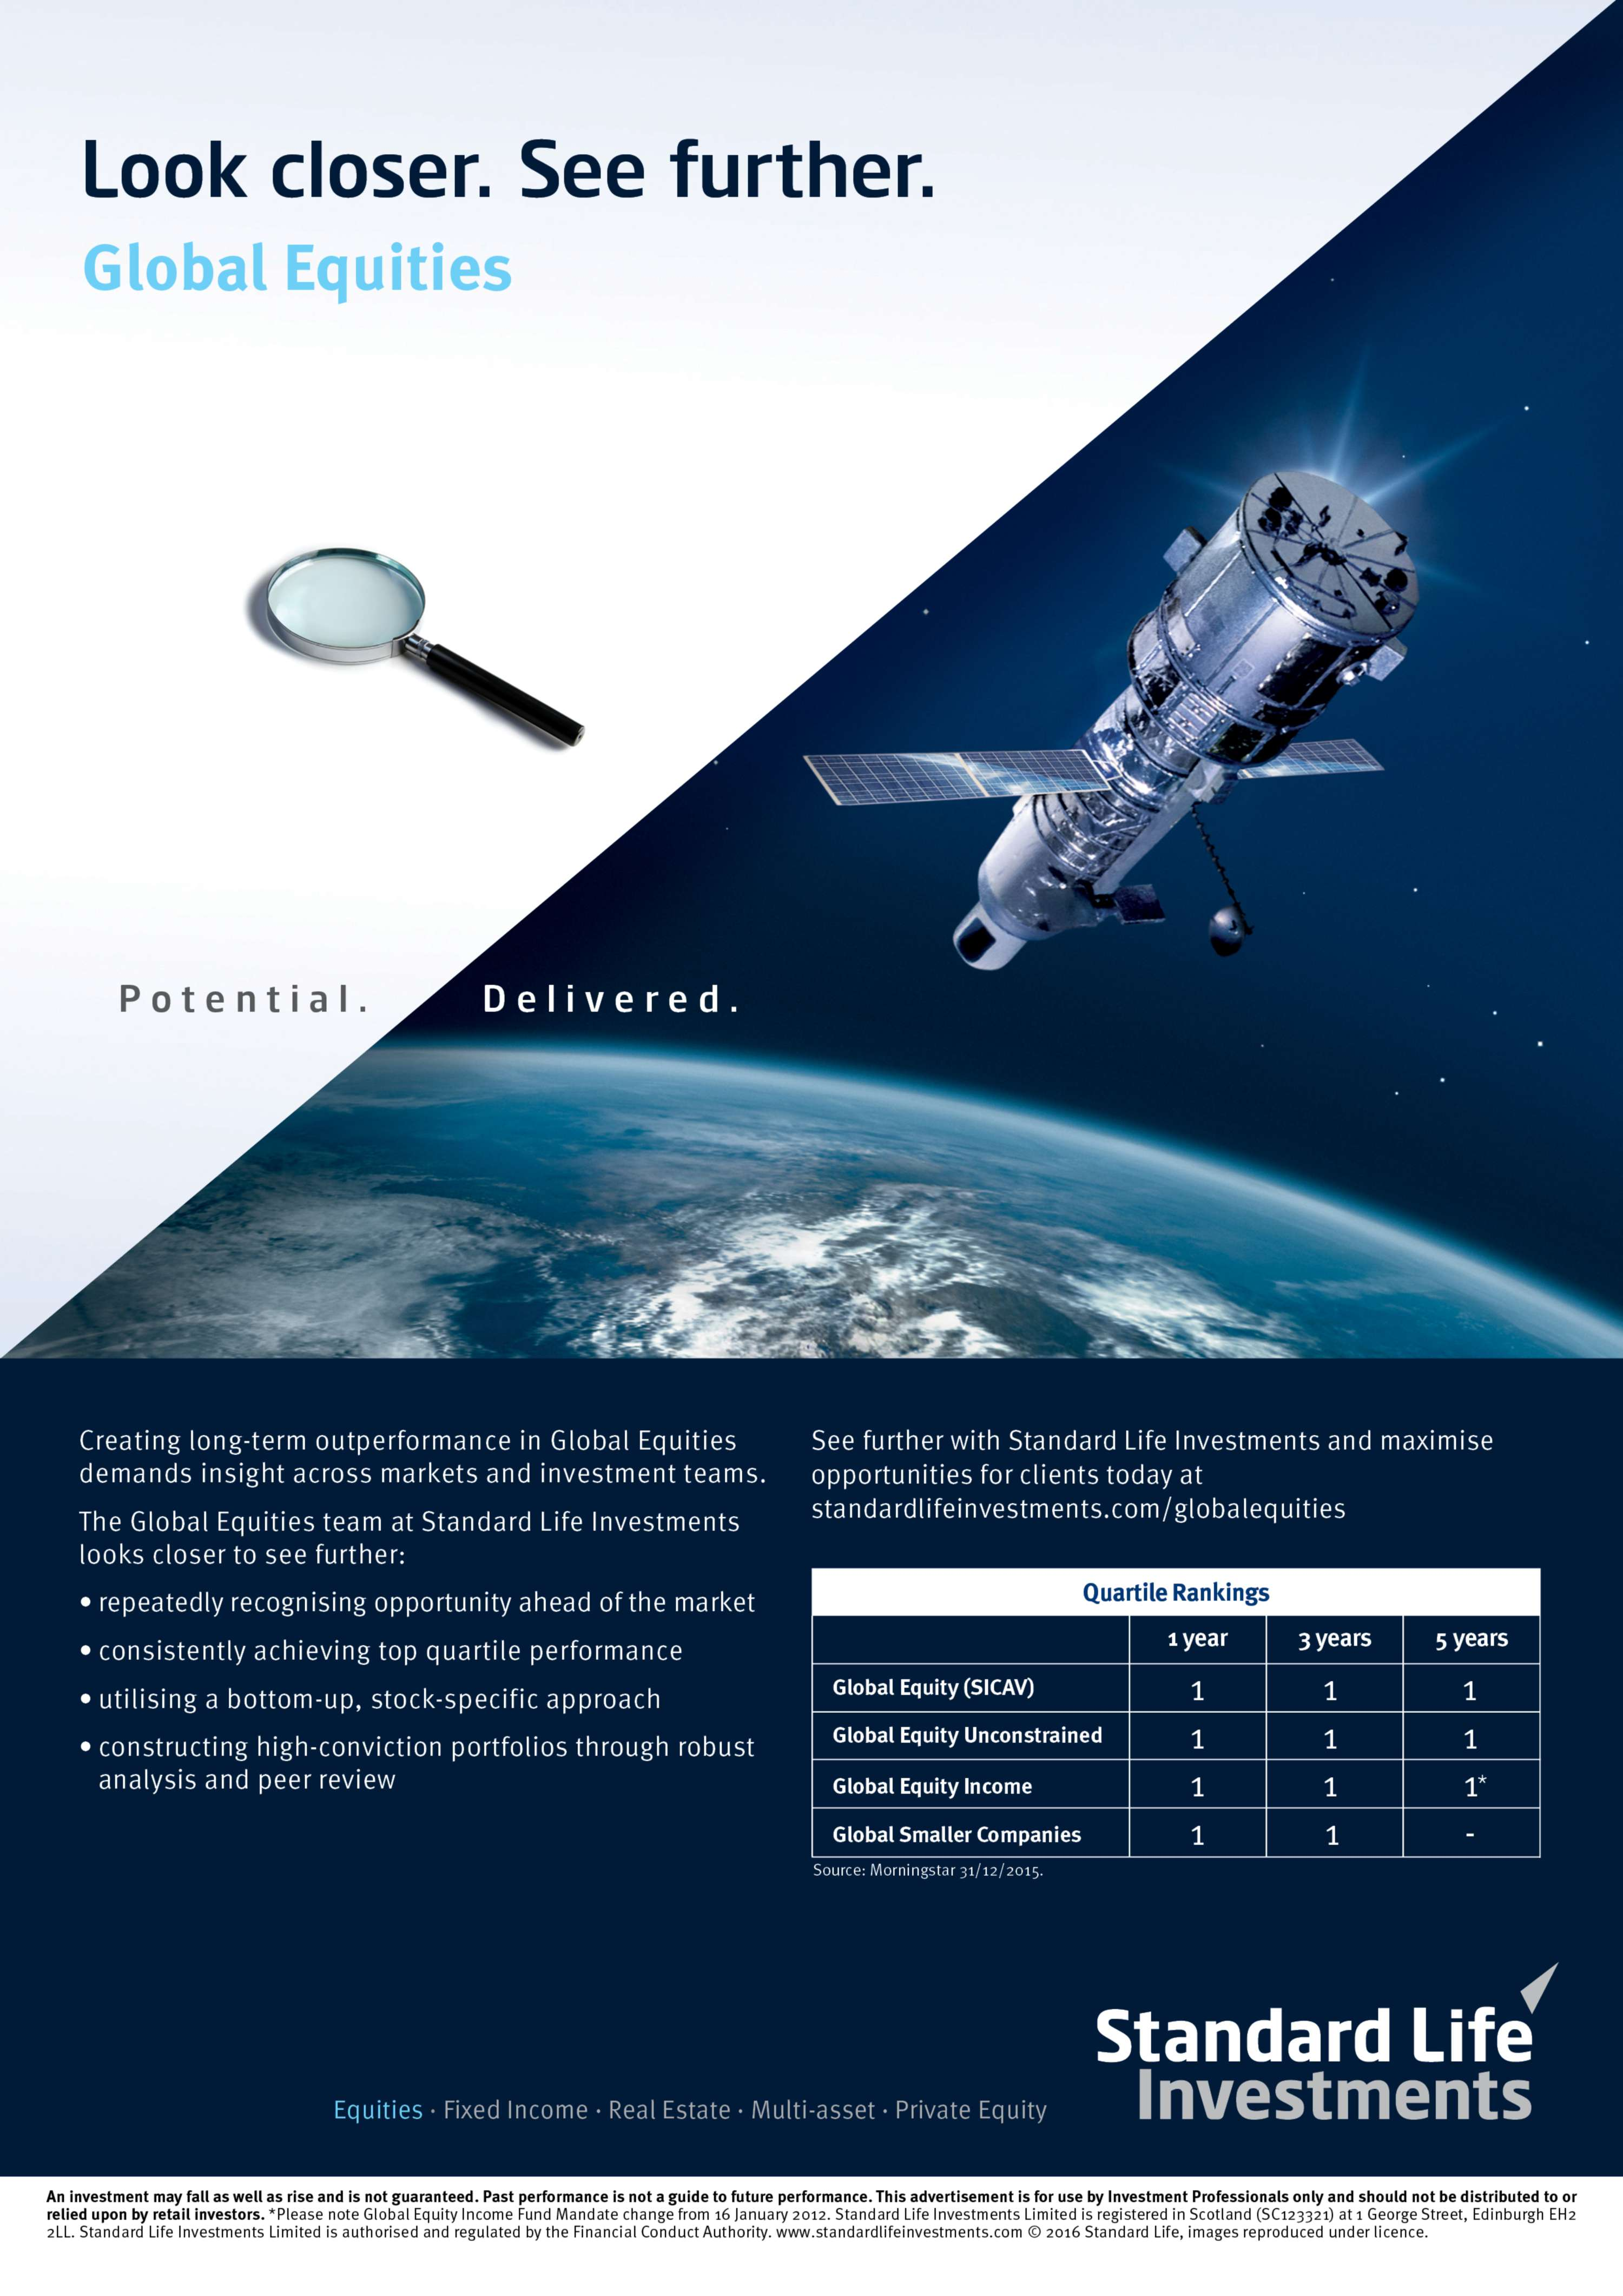 Standard life investments global ii -  Standard Life Investments Does Every Day Recognise The Real Potential In The Wide Universe Of Investment Opportunities And Then Deliver On These